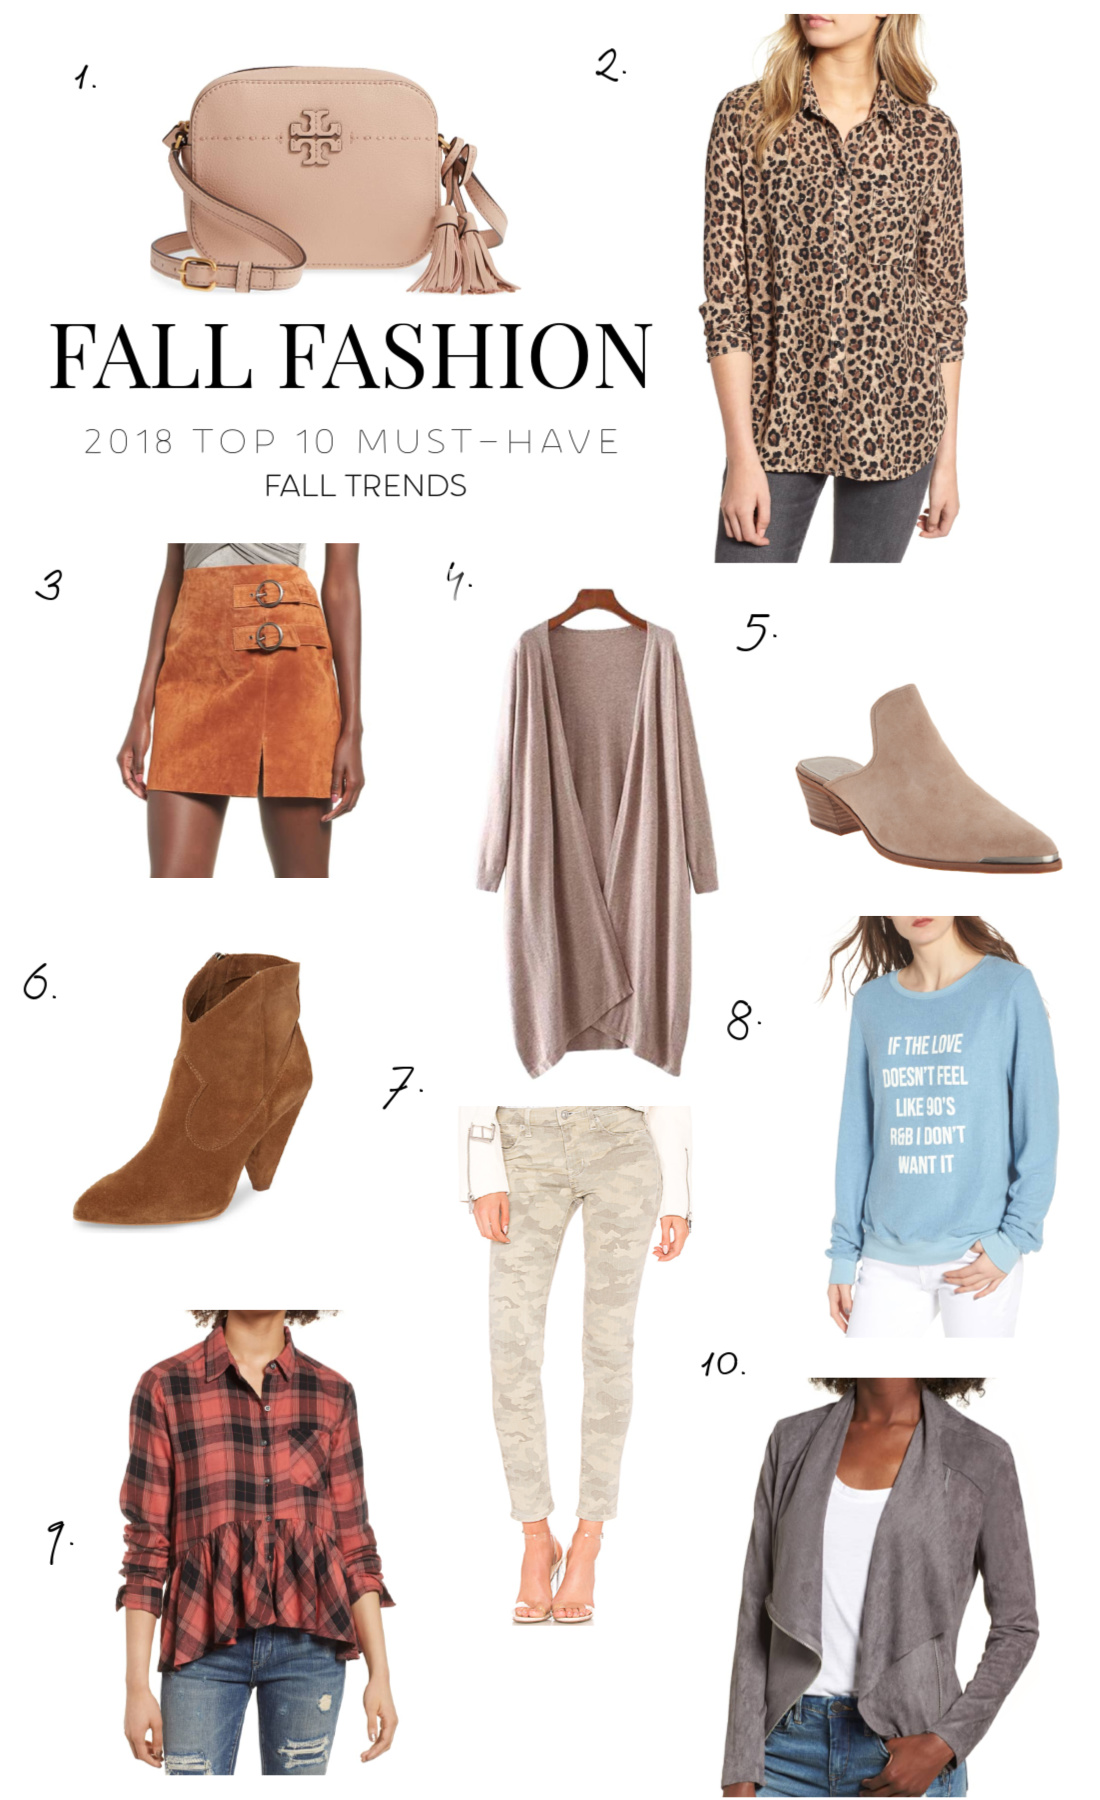 fall fashion trends 2018